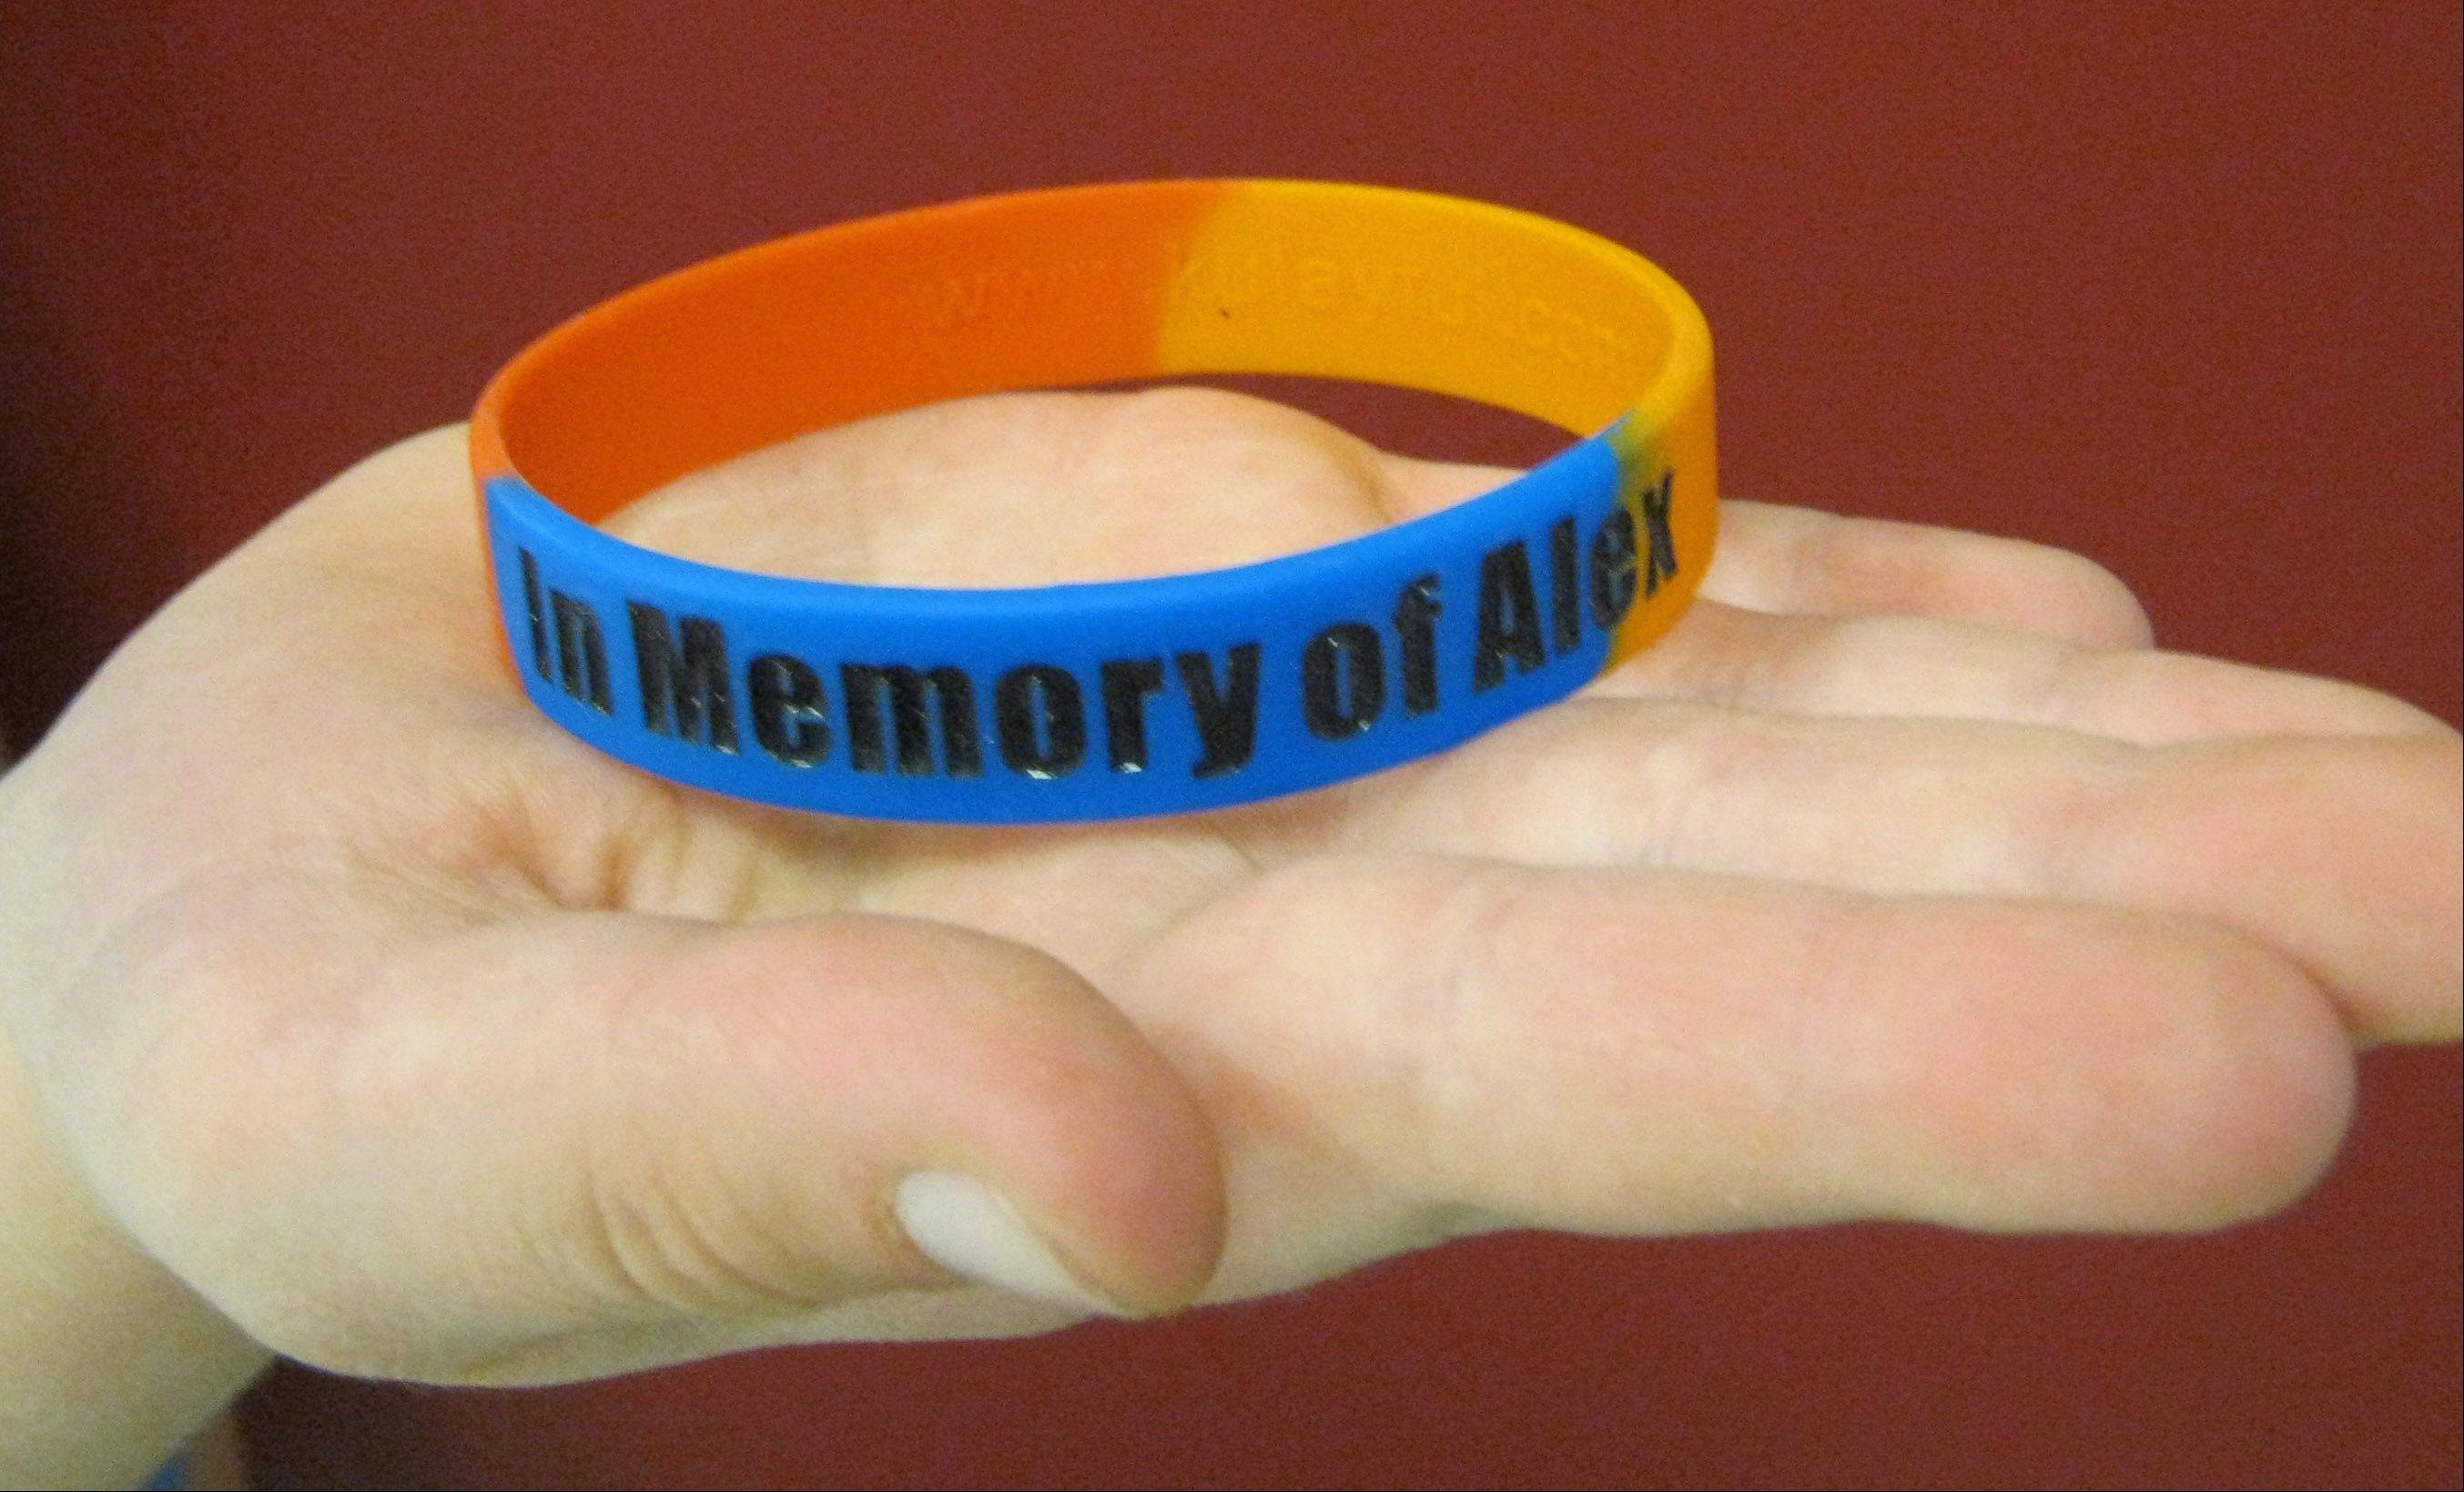 The memorial wristbands are red, orange and blue -- Alex Lancaster's favorite colors. The bands sell for $3 each.